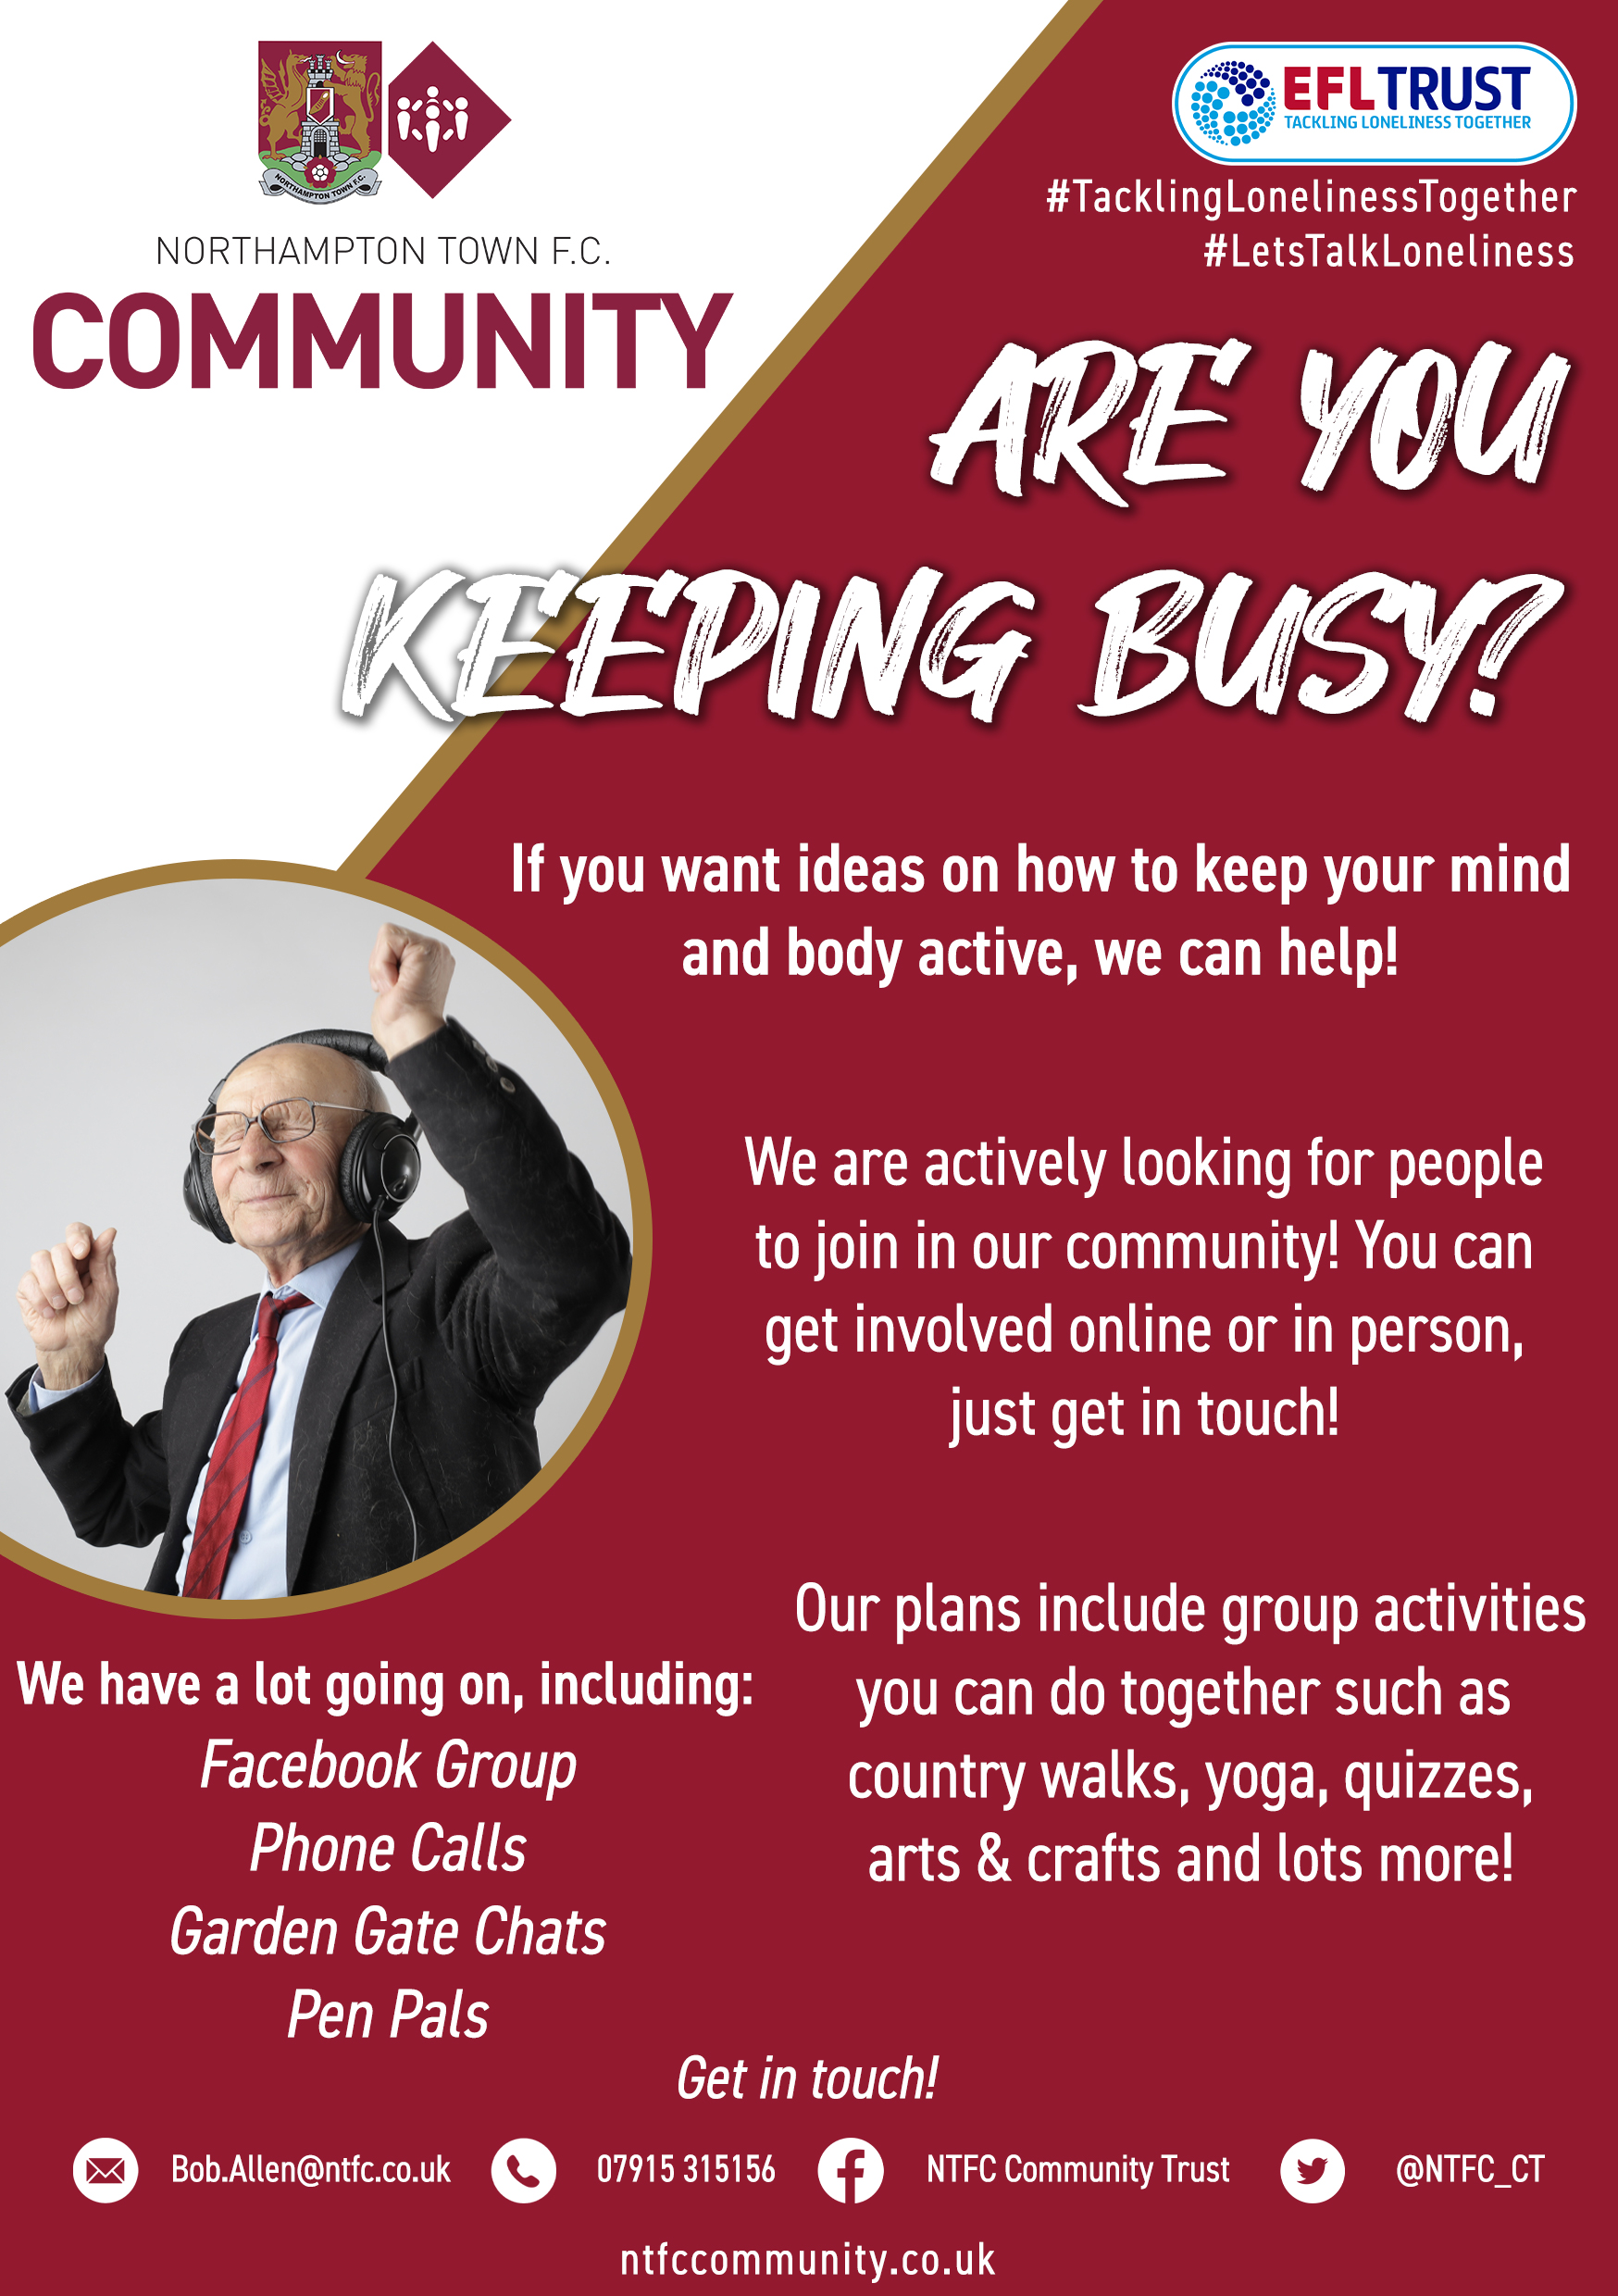 Tackling Loneliness Together Flyer